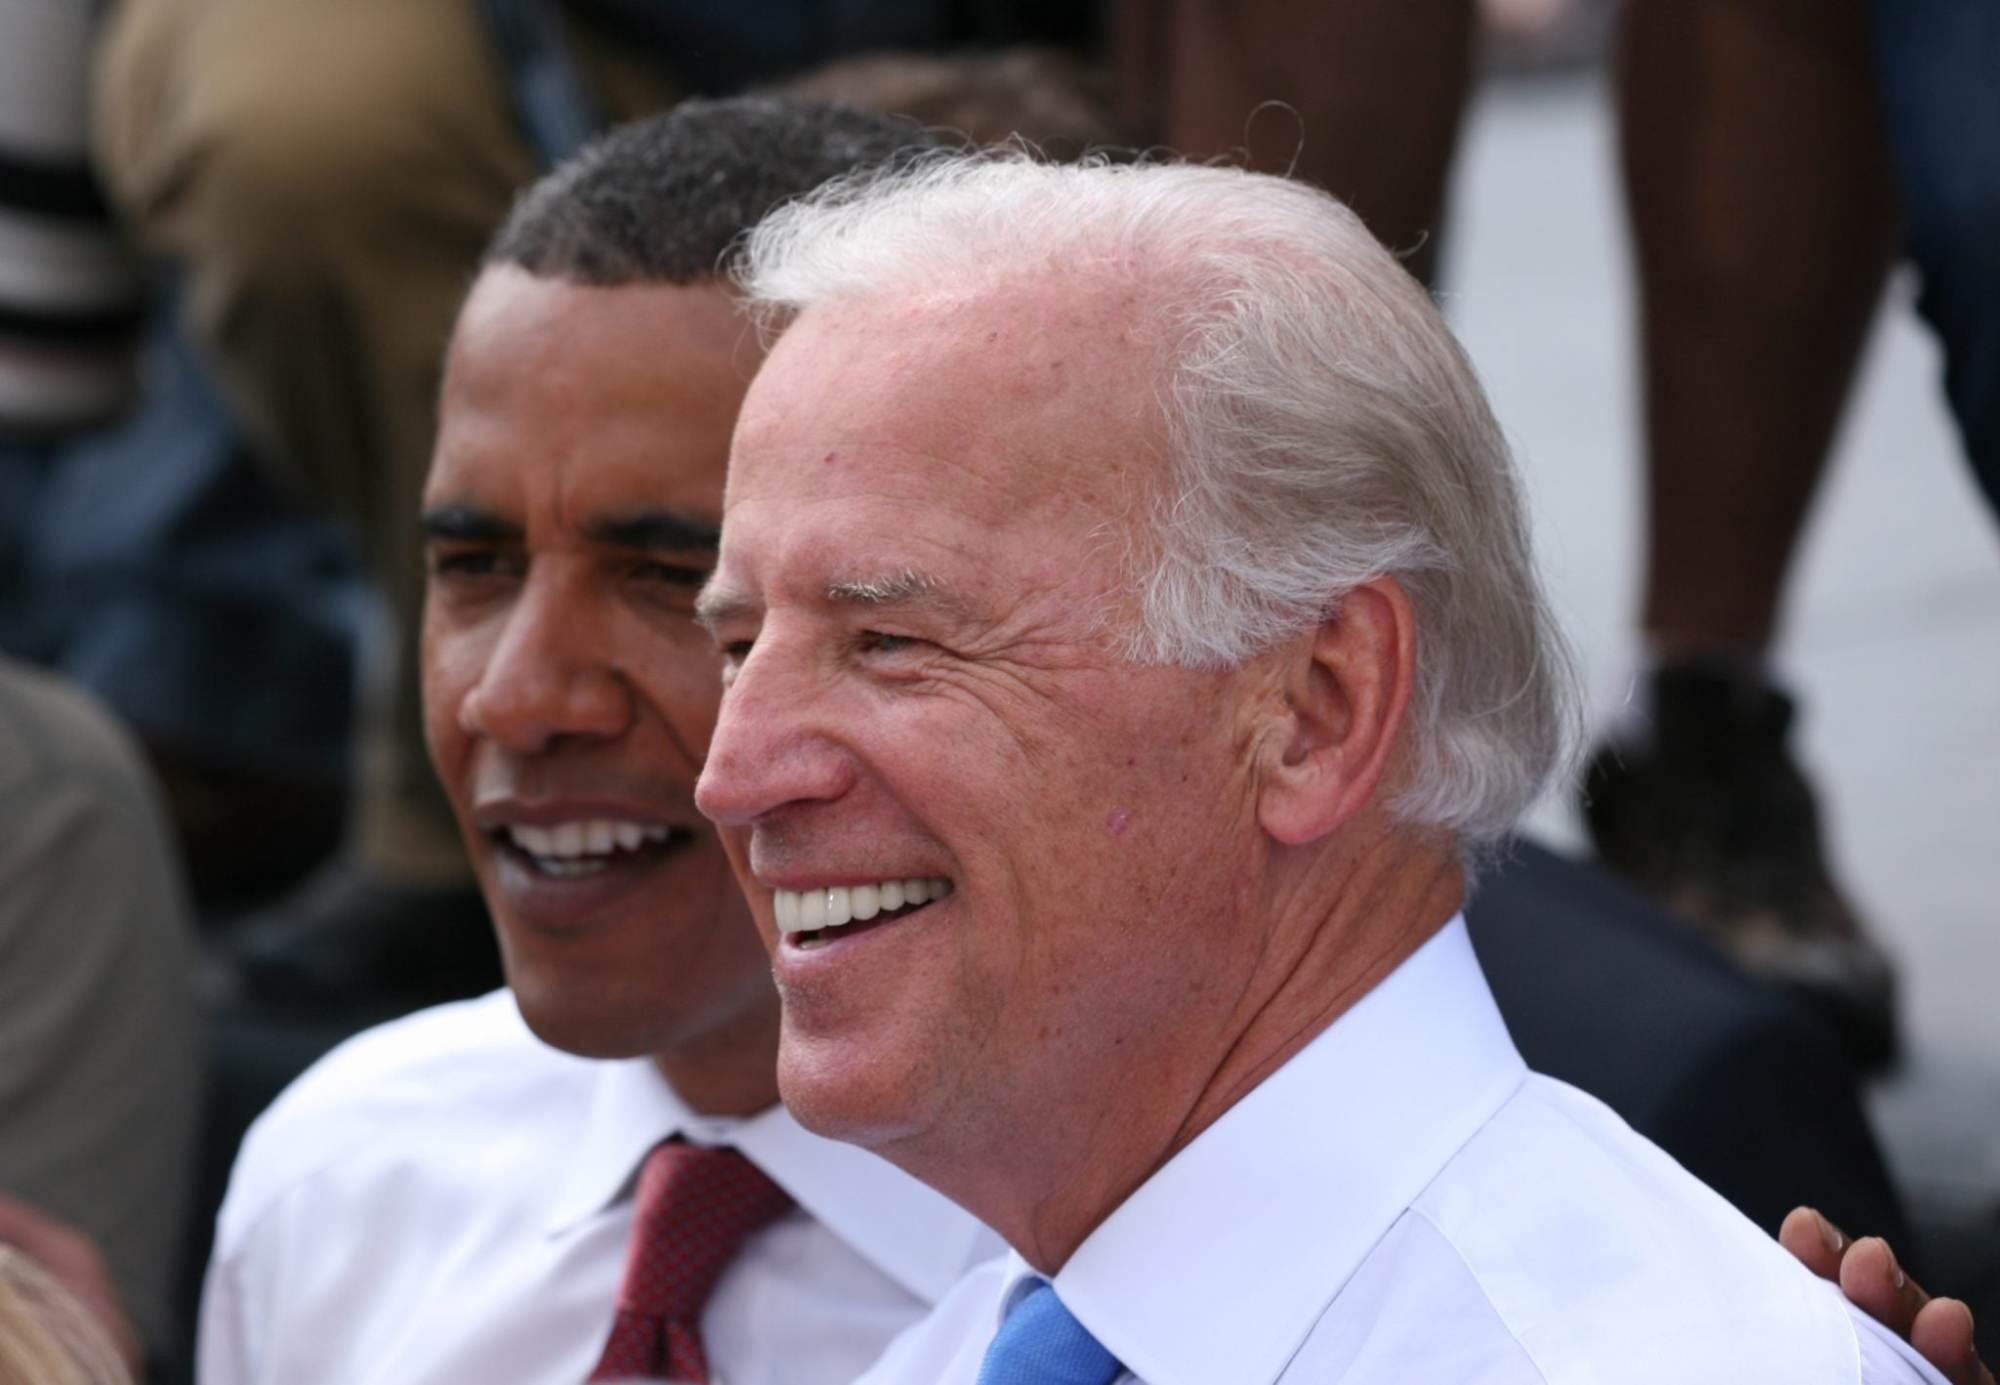 Delaware Senator Confident Biden Will Run In 2020